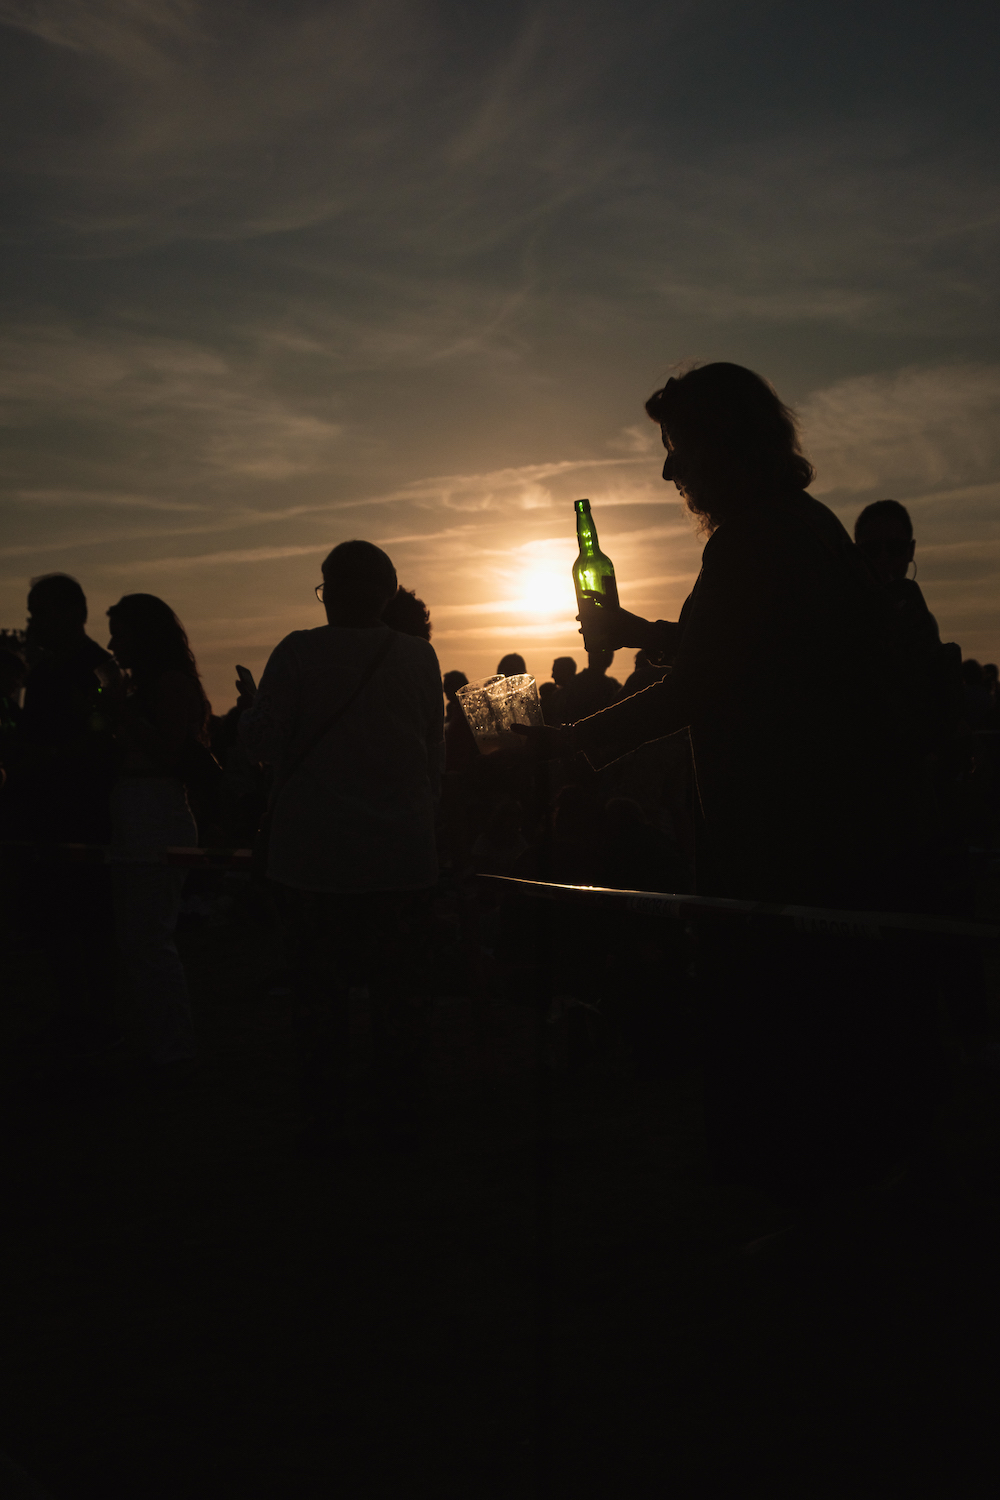 Sidra pouring world record at sunset in Gijon, Asturias, northern Spain by Ben Holbrook from DriftwoodJournals.com